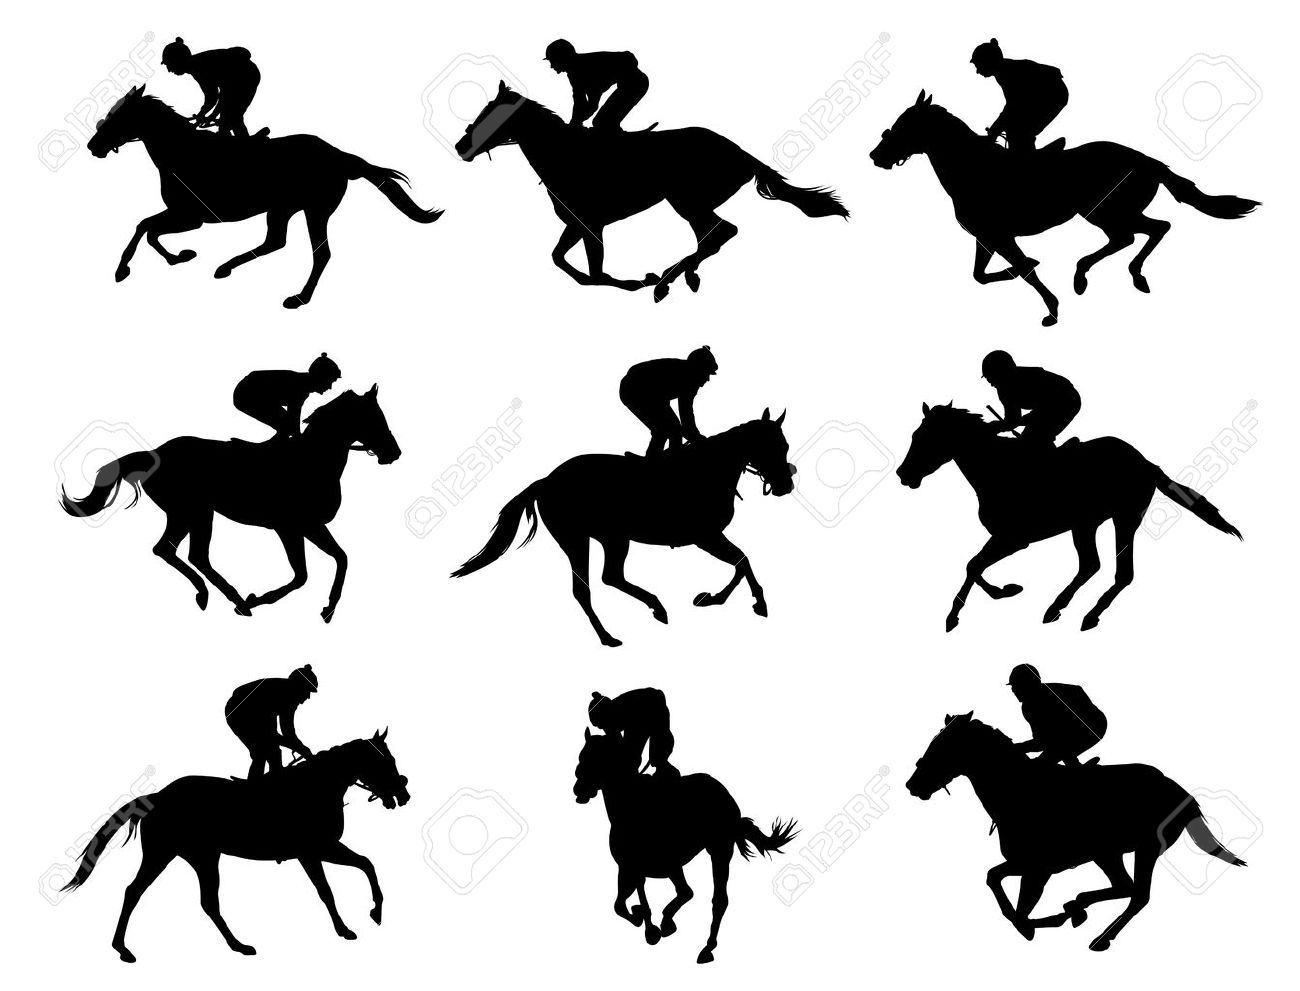 Racing Horses And Jockeys Silhouettes Royalty Free Cliparts Vectors And Stock Illustration Image 20626623